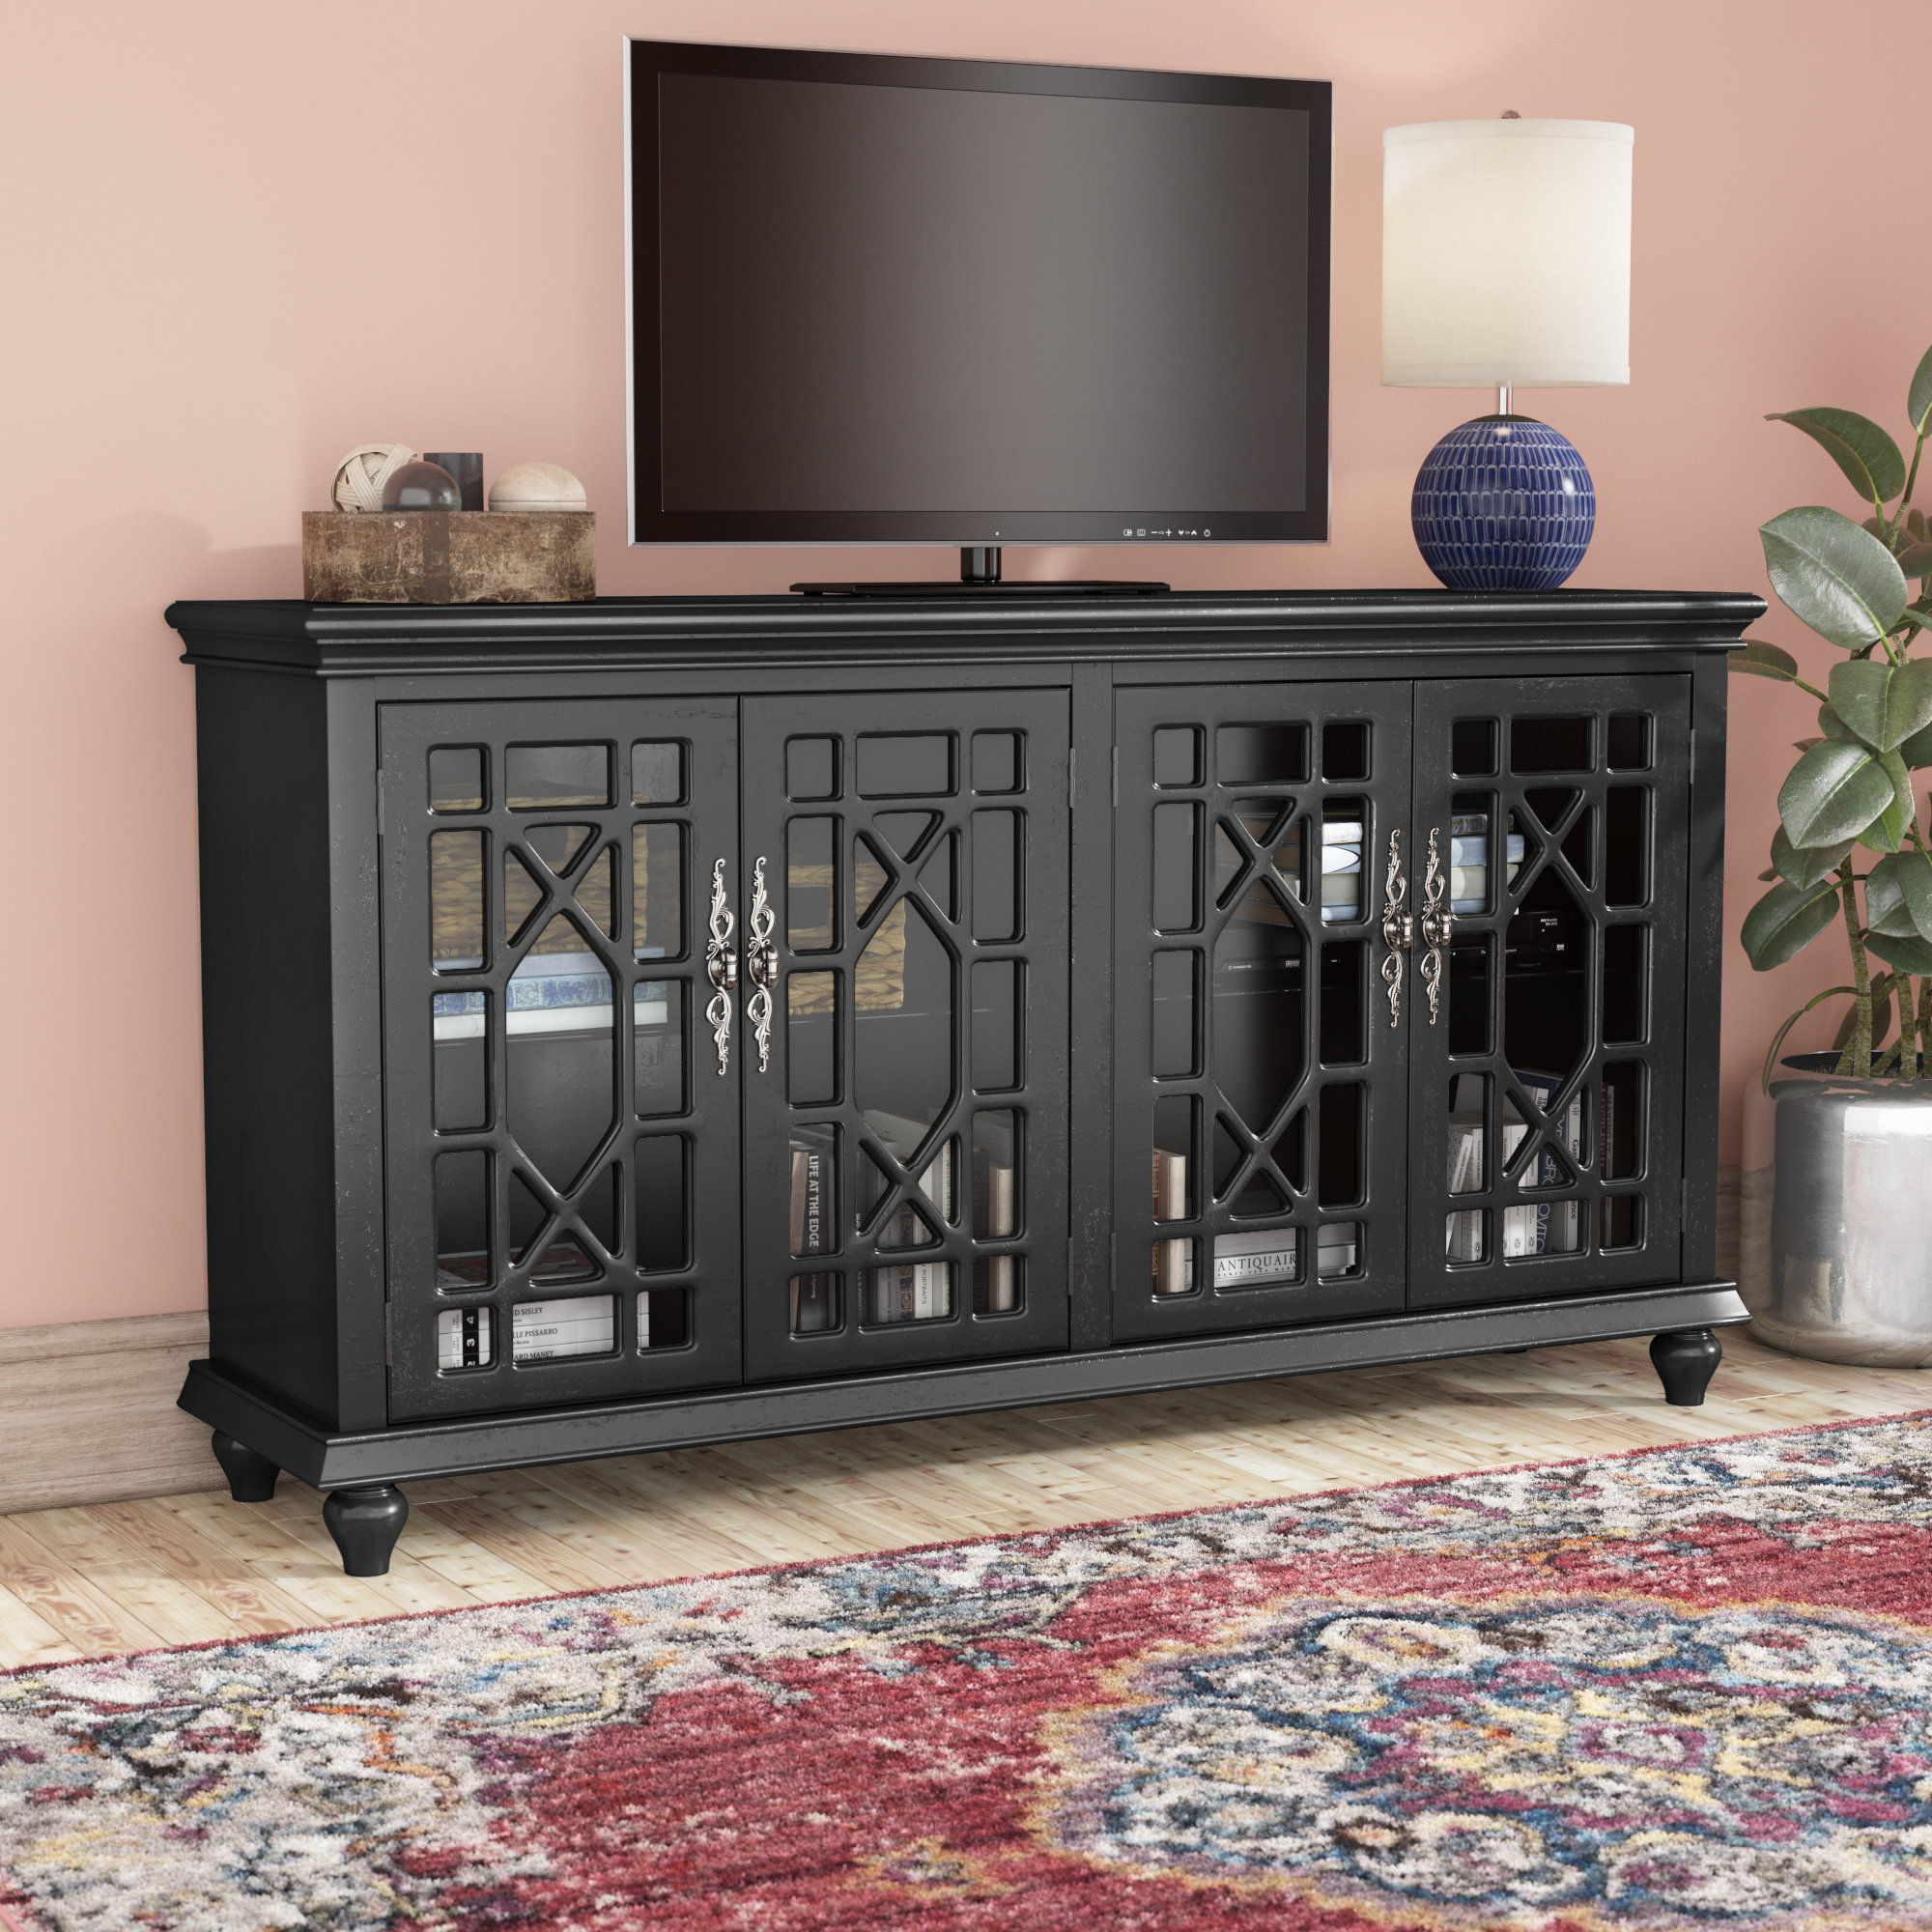 "Inspiration about Tv Stand Sideboard | Wayfair Within Recent Ericka Tv Stands For Tvs Up To 42"" (#20 of 20)"